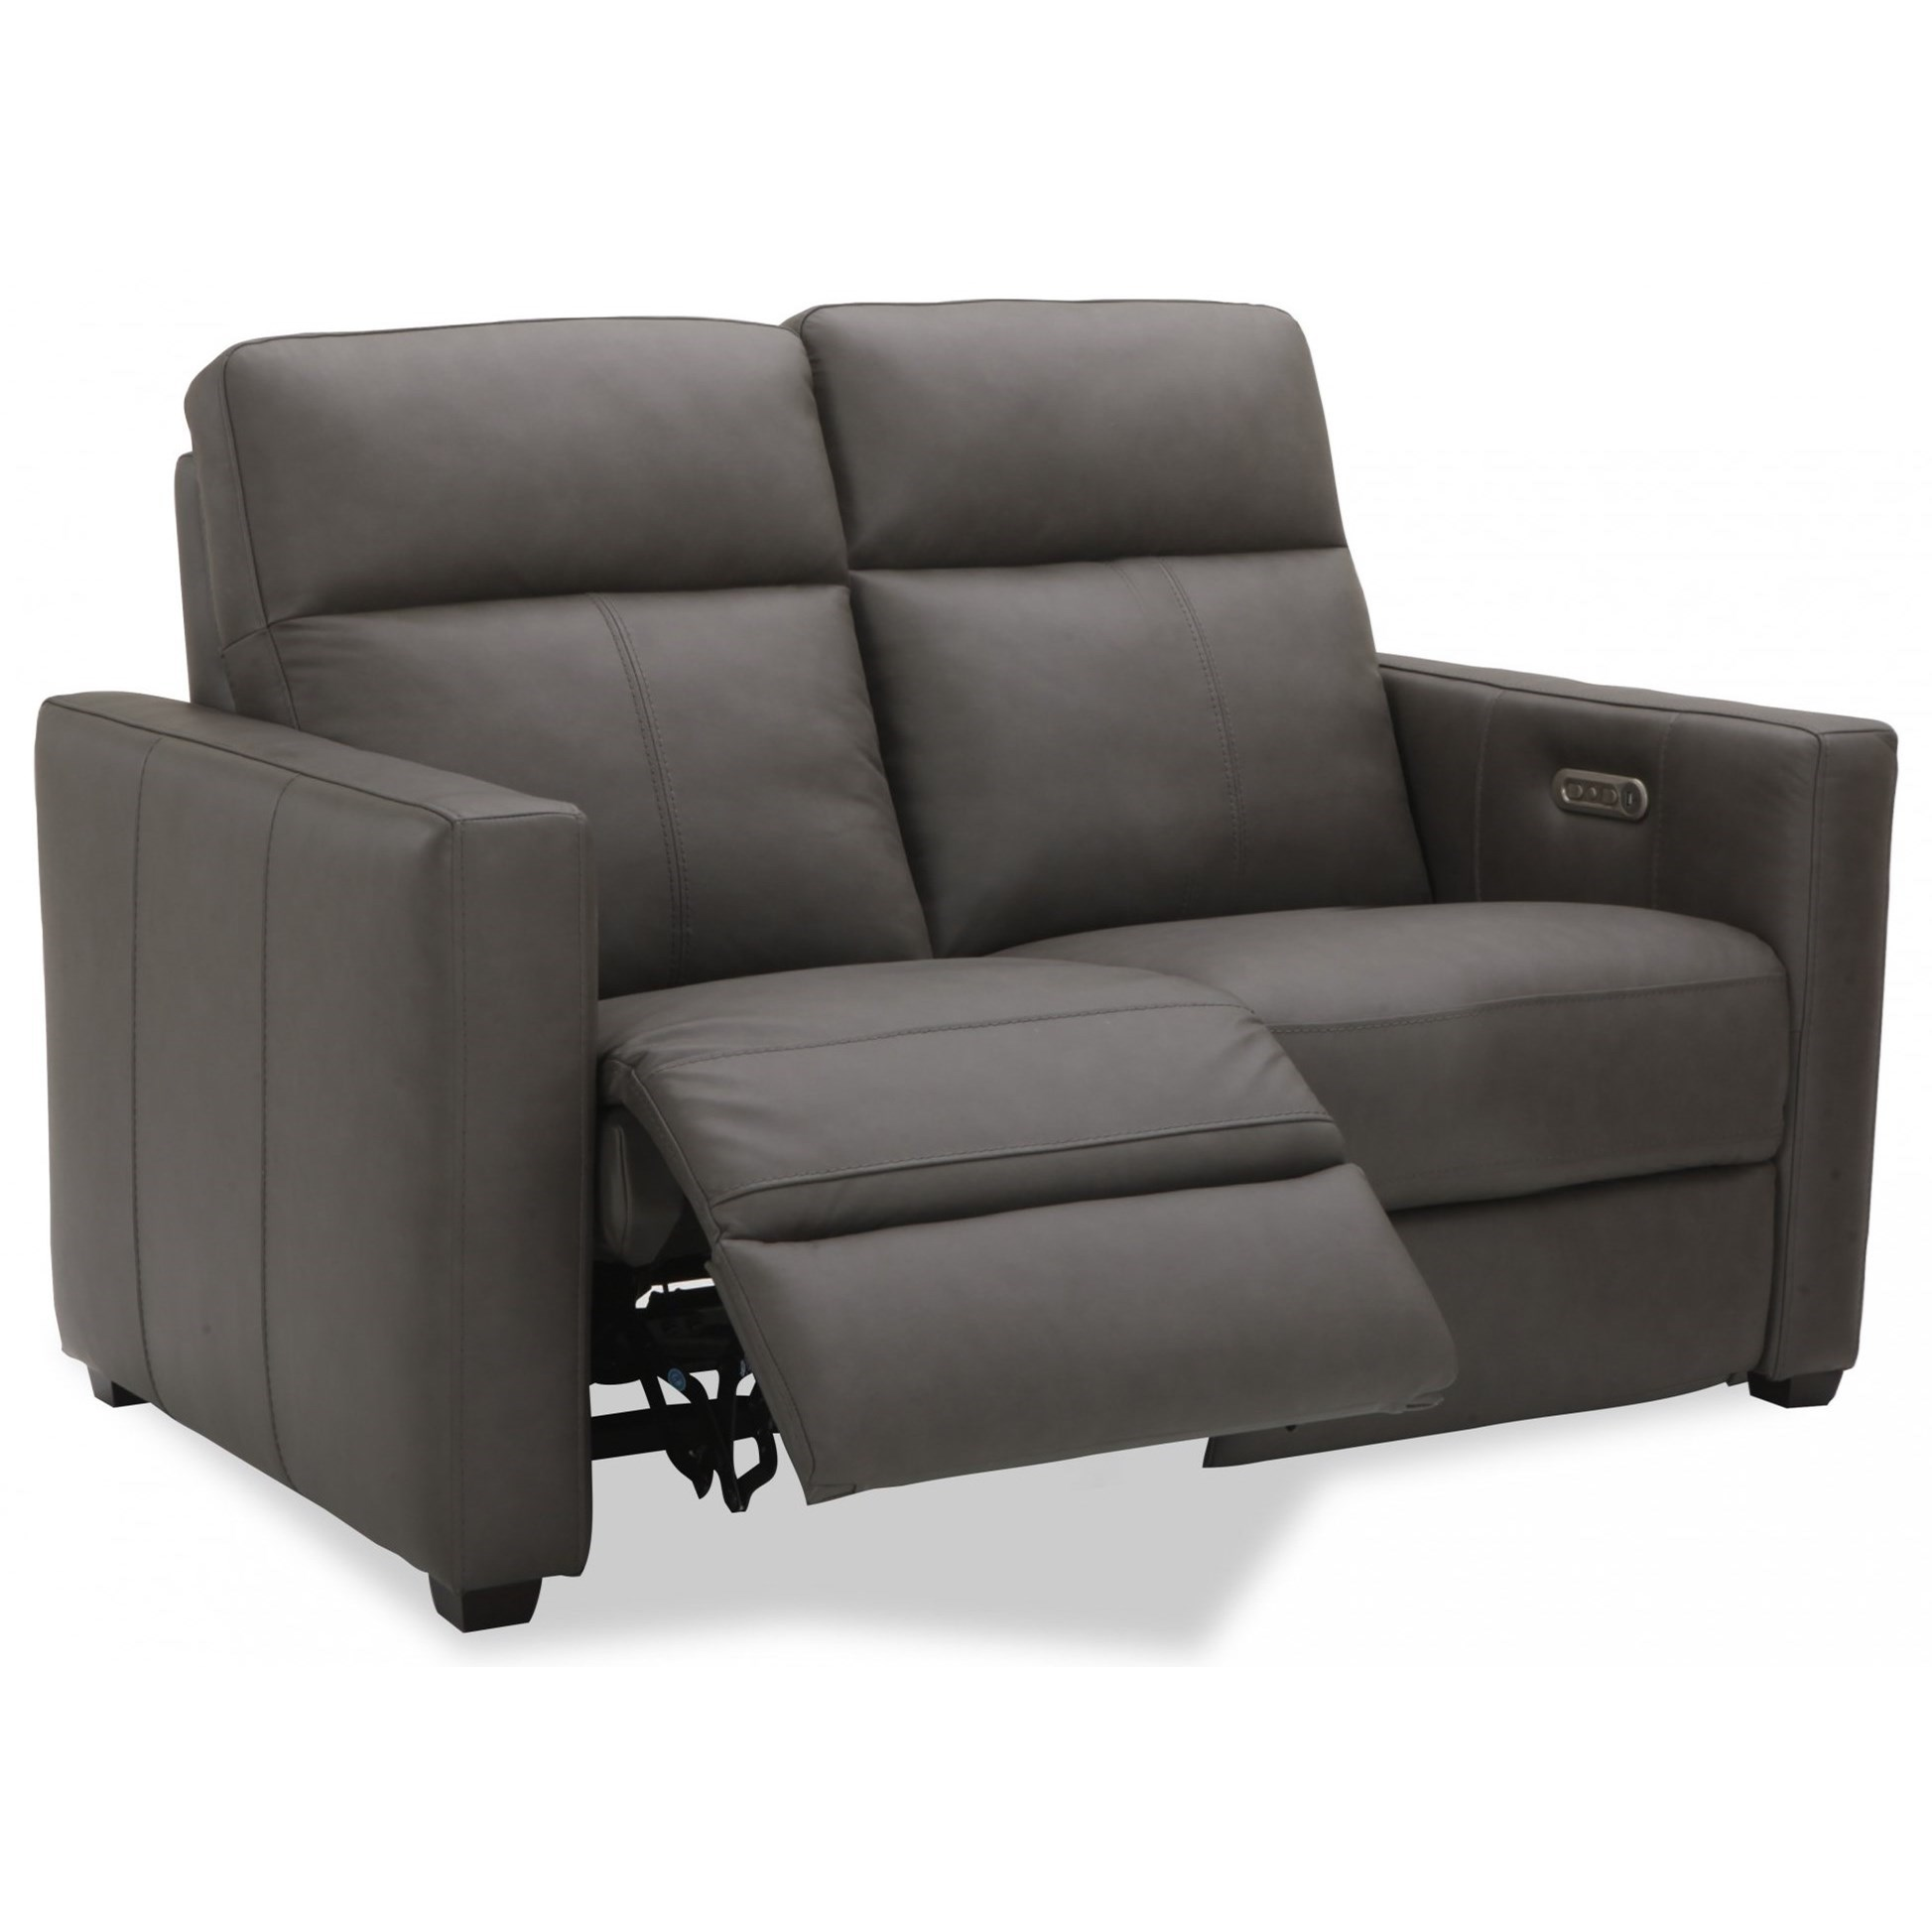 Latitudes - Broadway Power Reclining Loveseat by Flexsteel at Goffena Furniture & Mattress Center